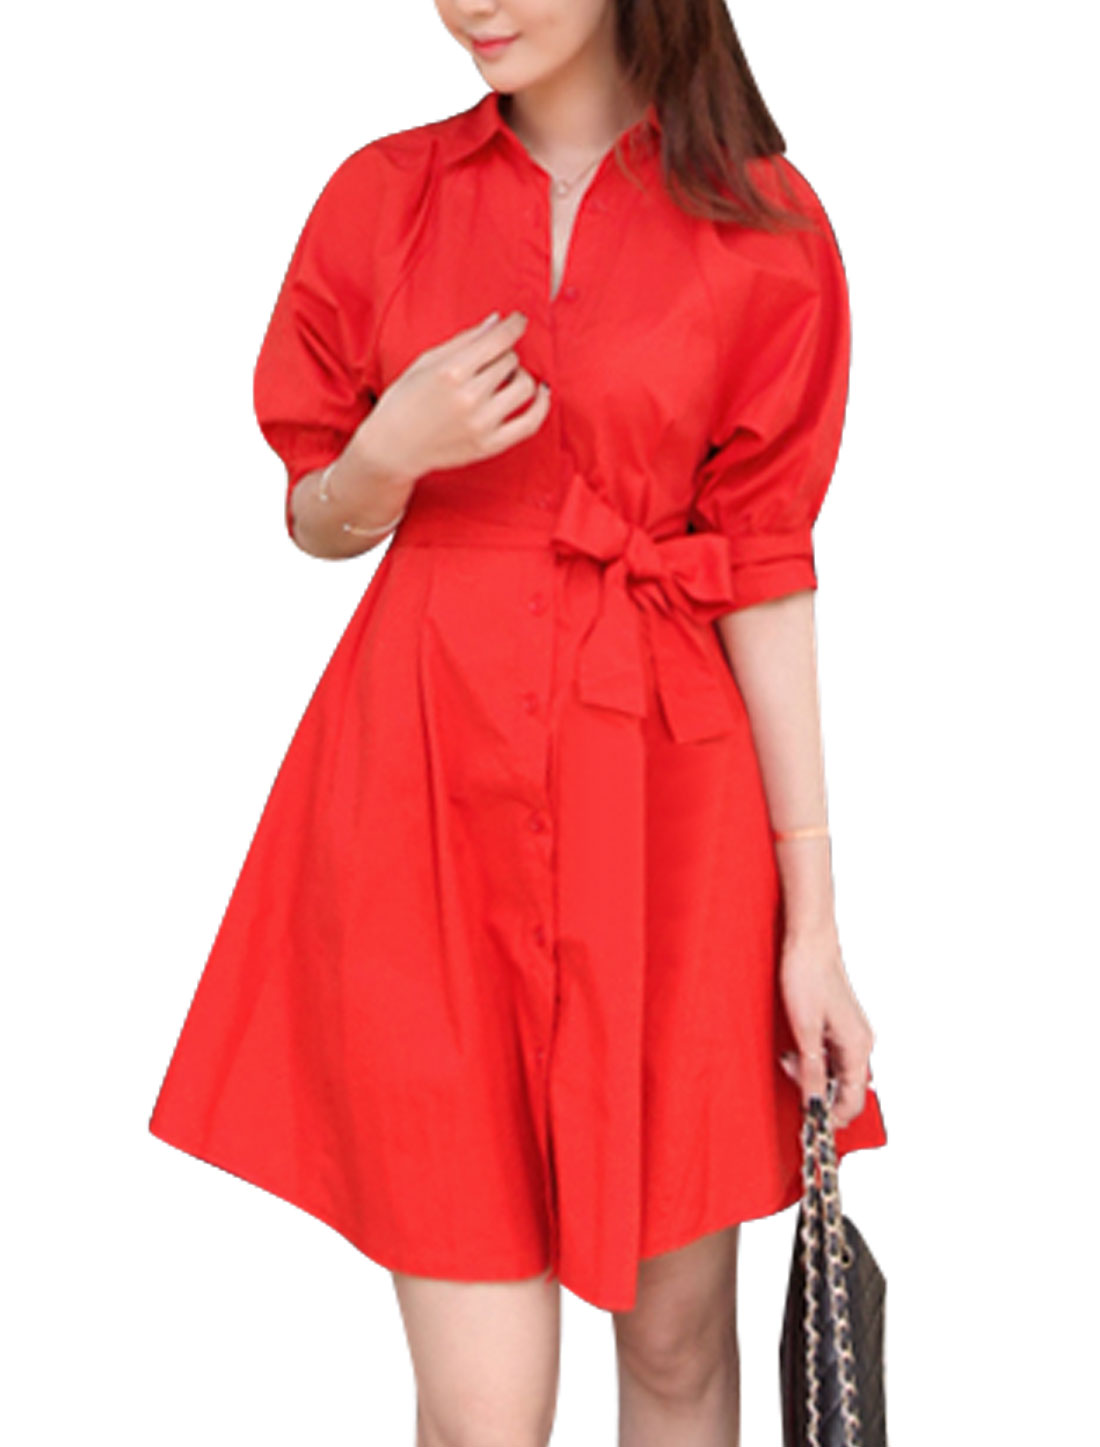 Women Point Collar Button Down Short Sleeves Shirt Dress w Waist Belt Red XS